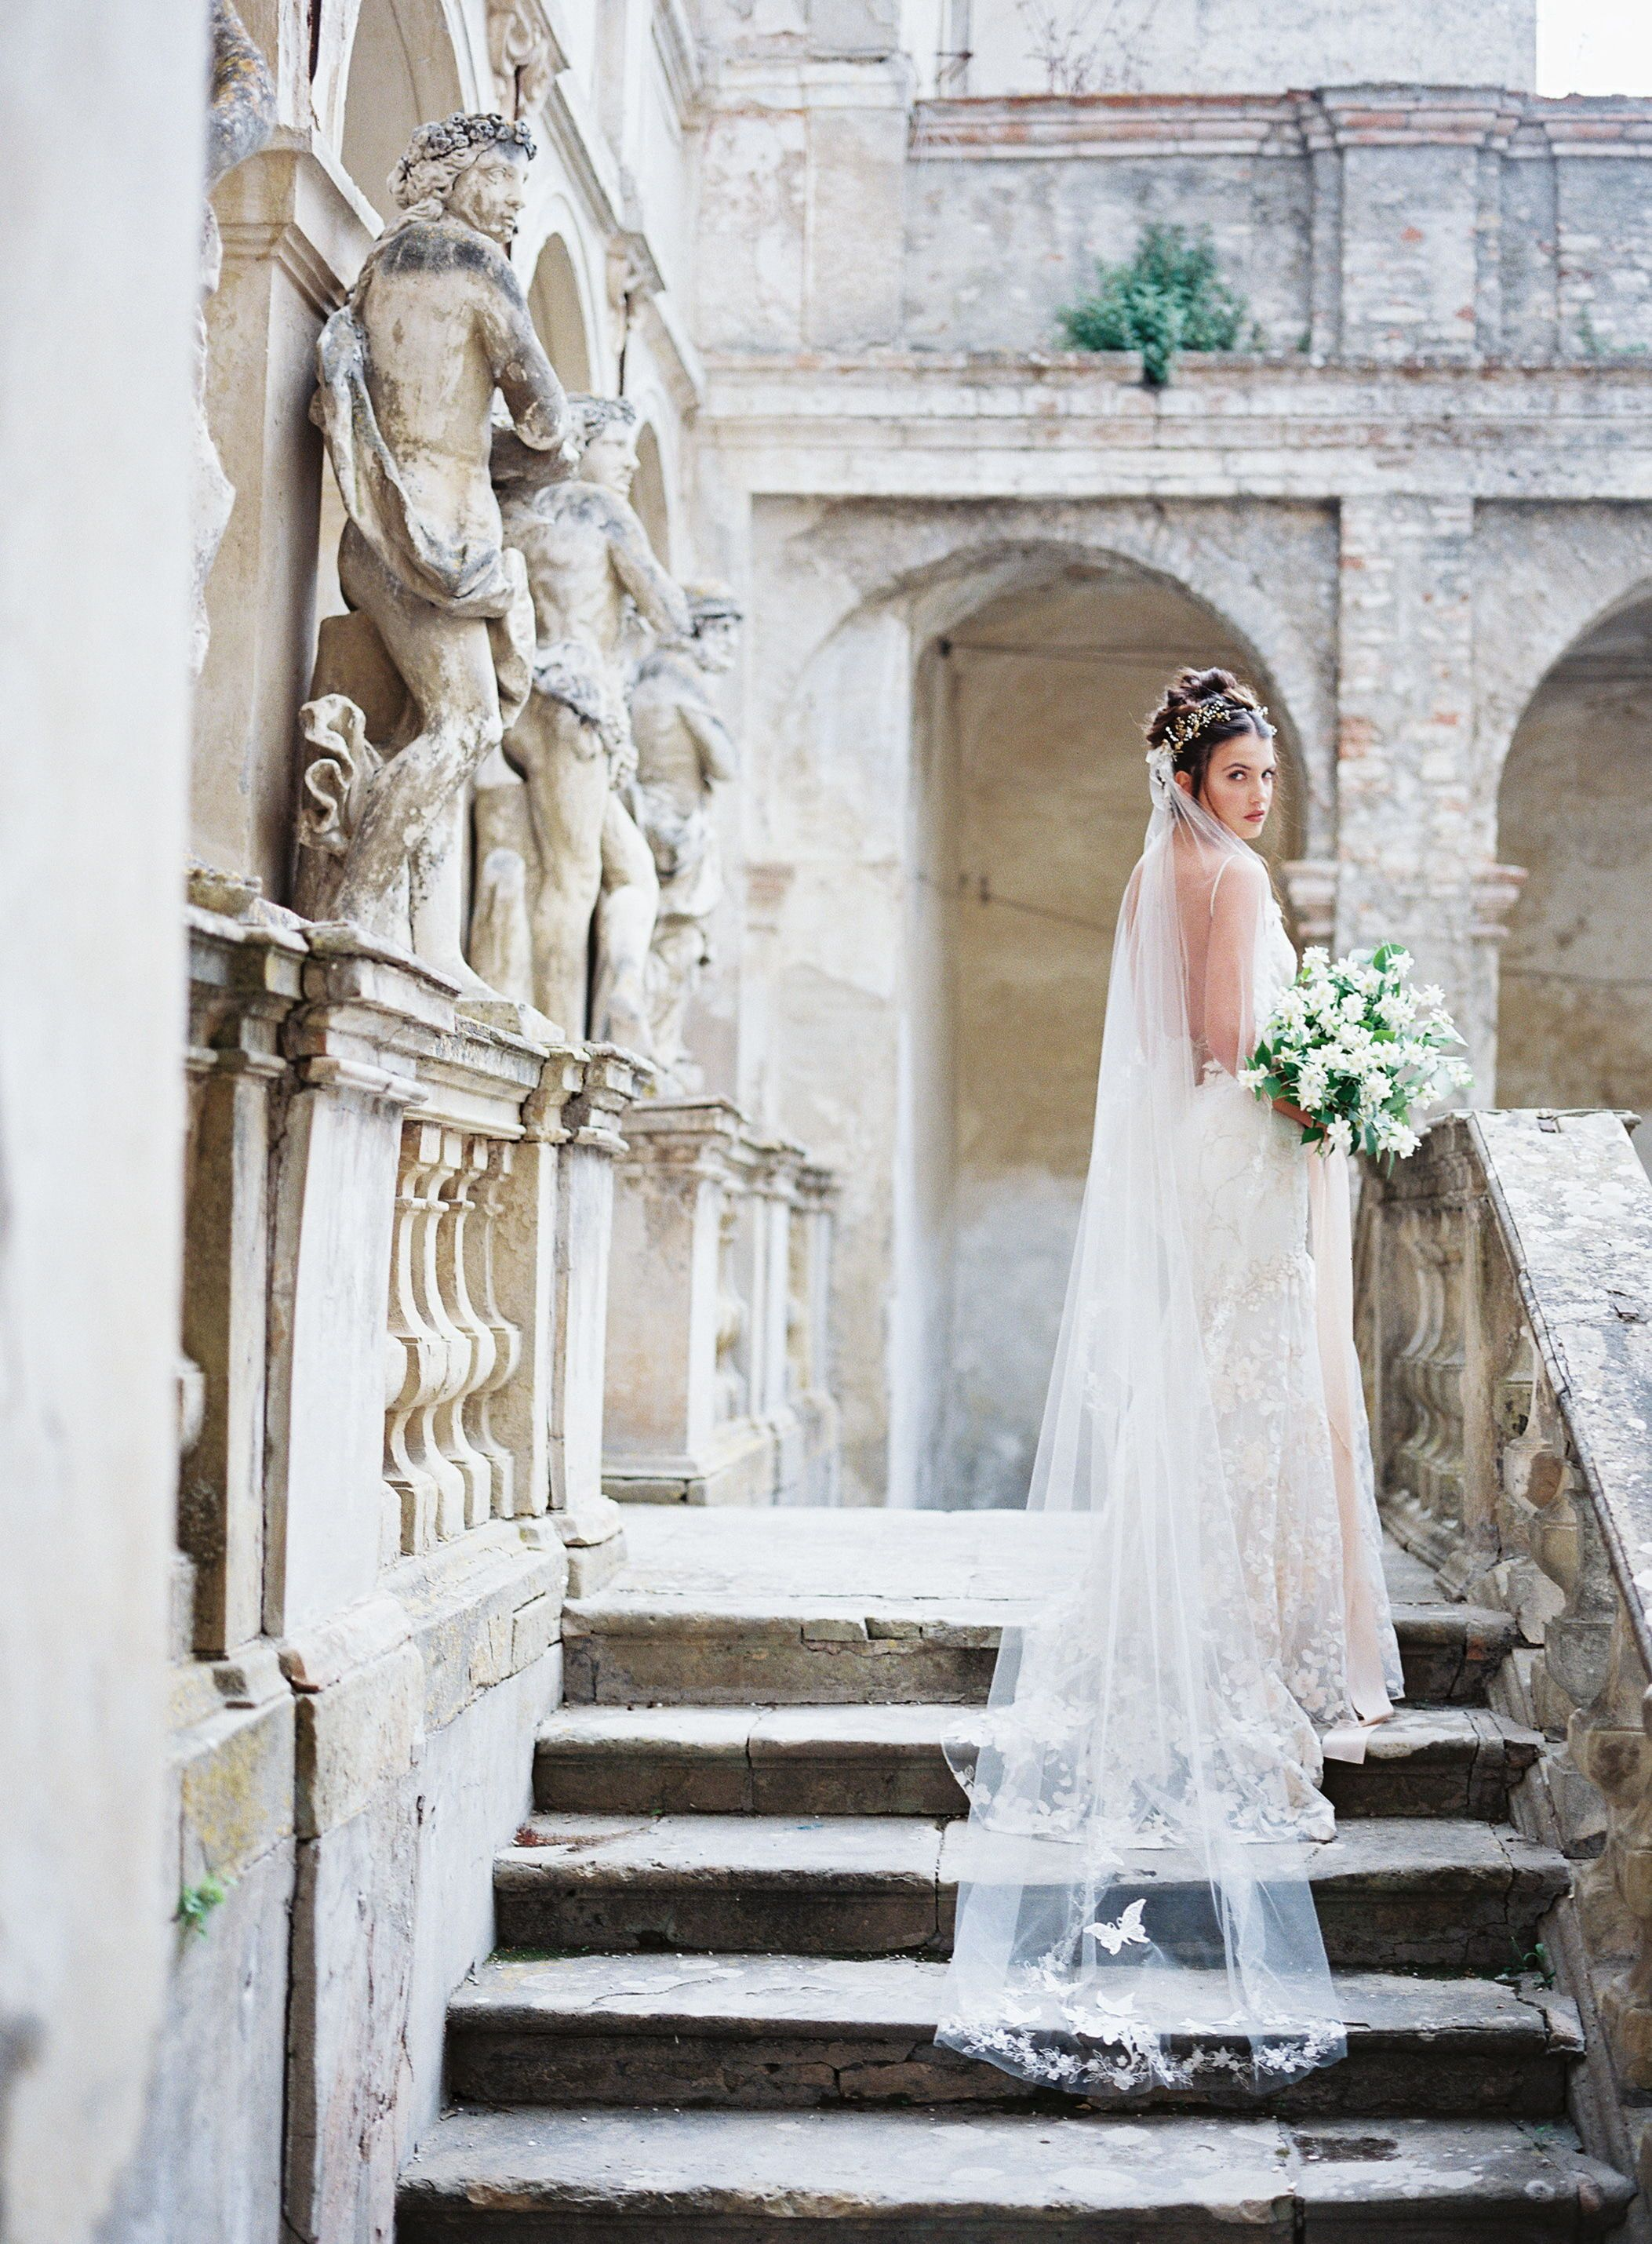 The claire pettibone tulle butterfly veil and april embroidered